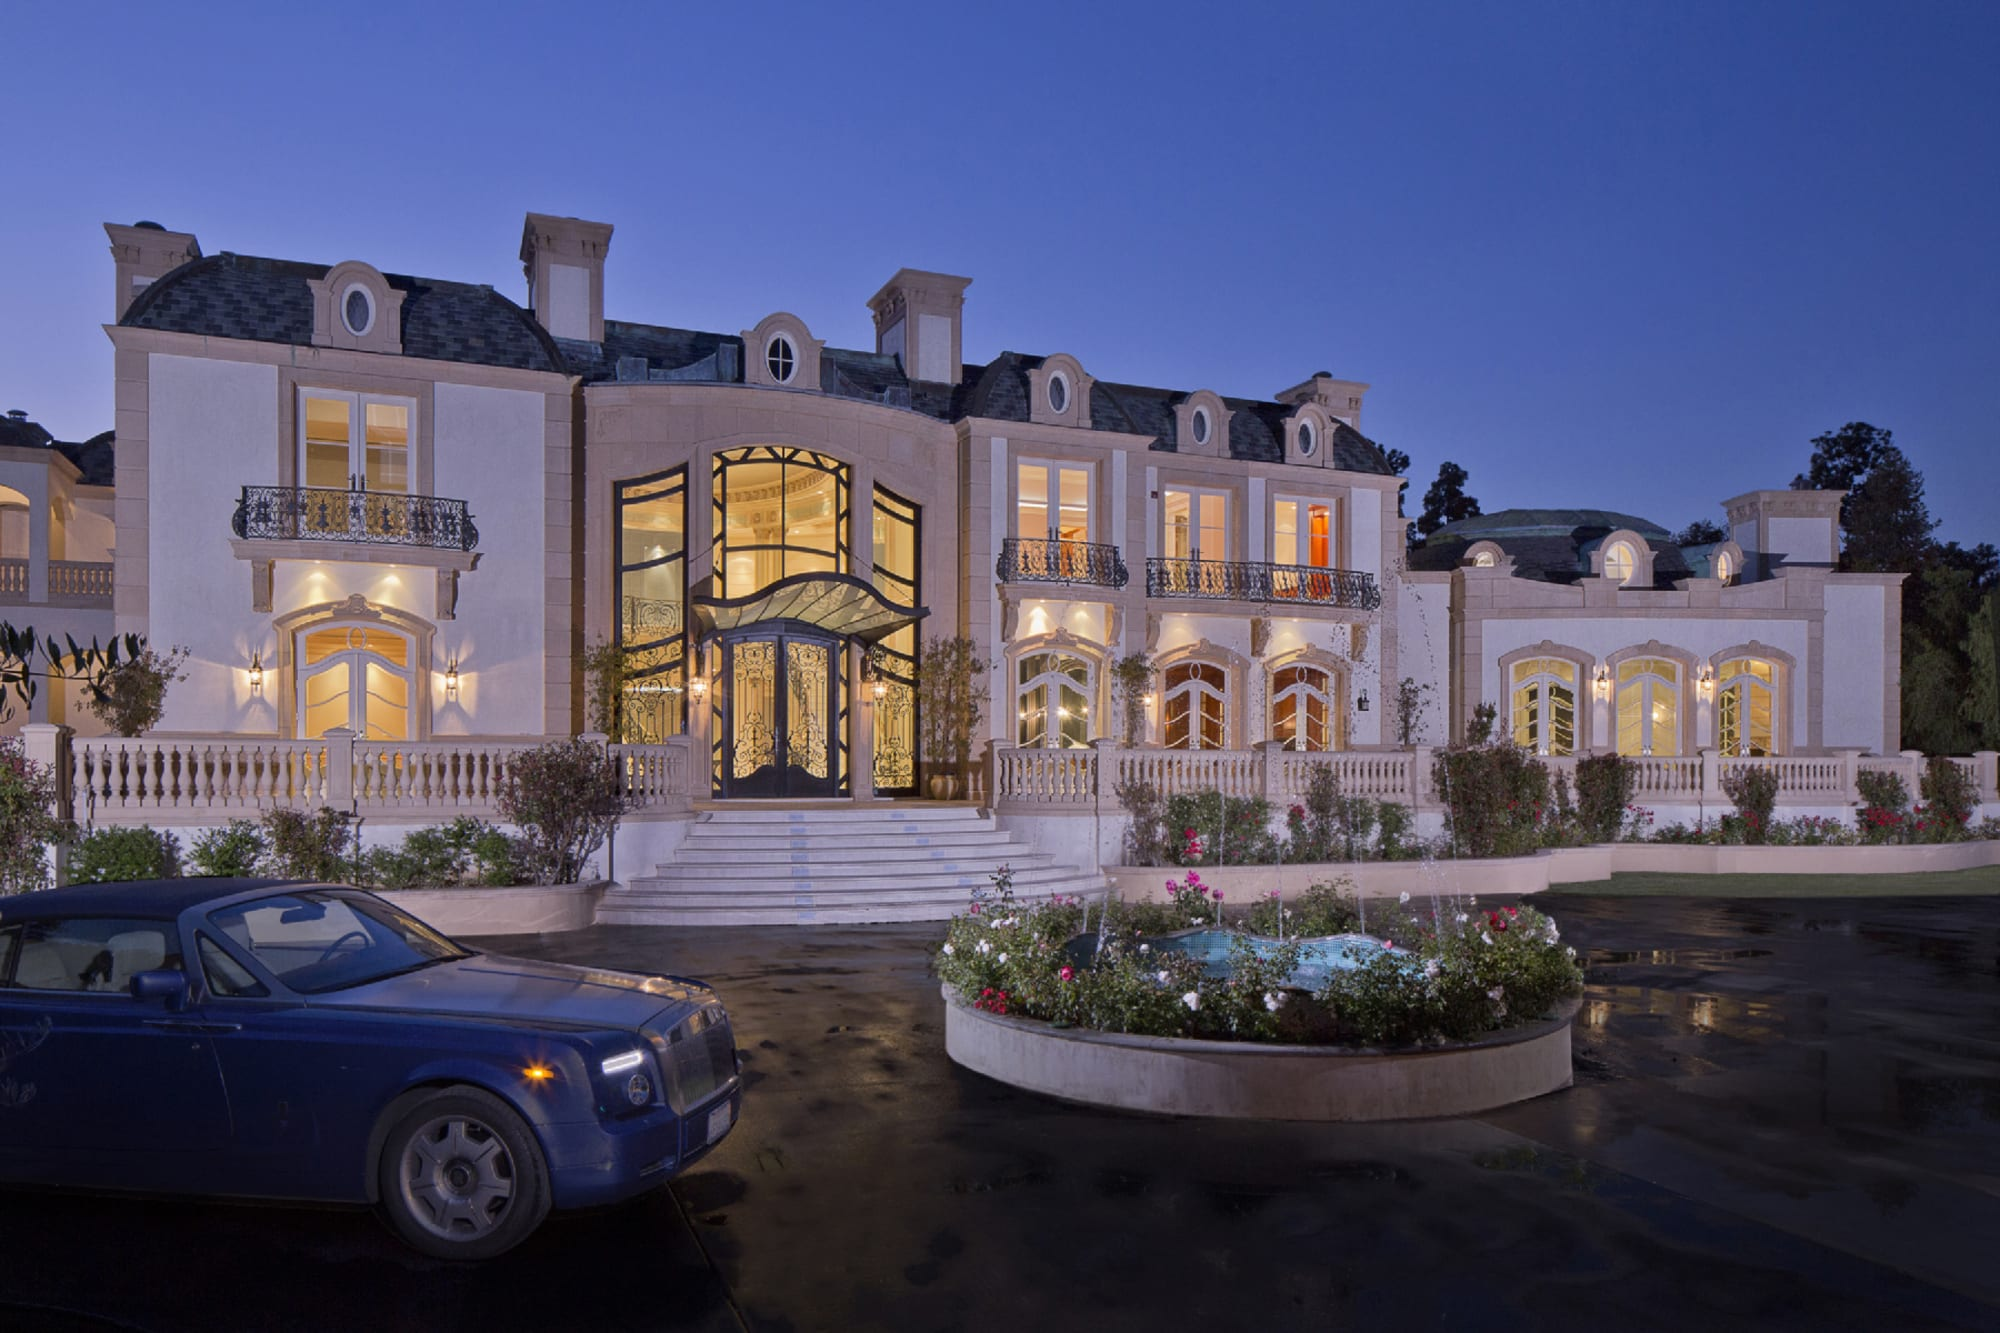 Jade mills beverly hills real estate agent luxury homes for Luxury homes for sale in beverly hills